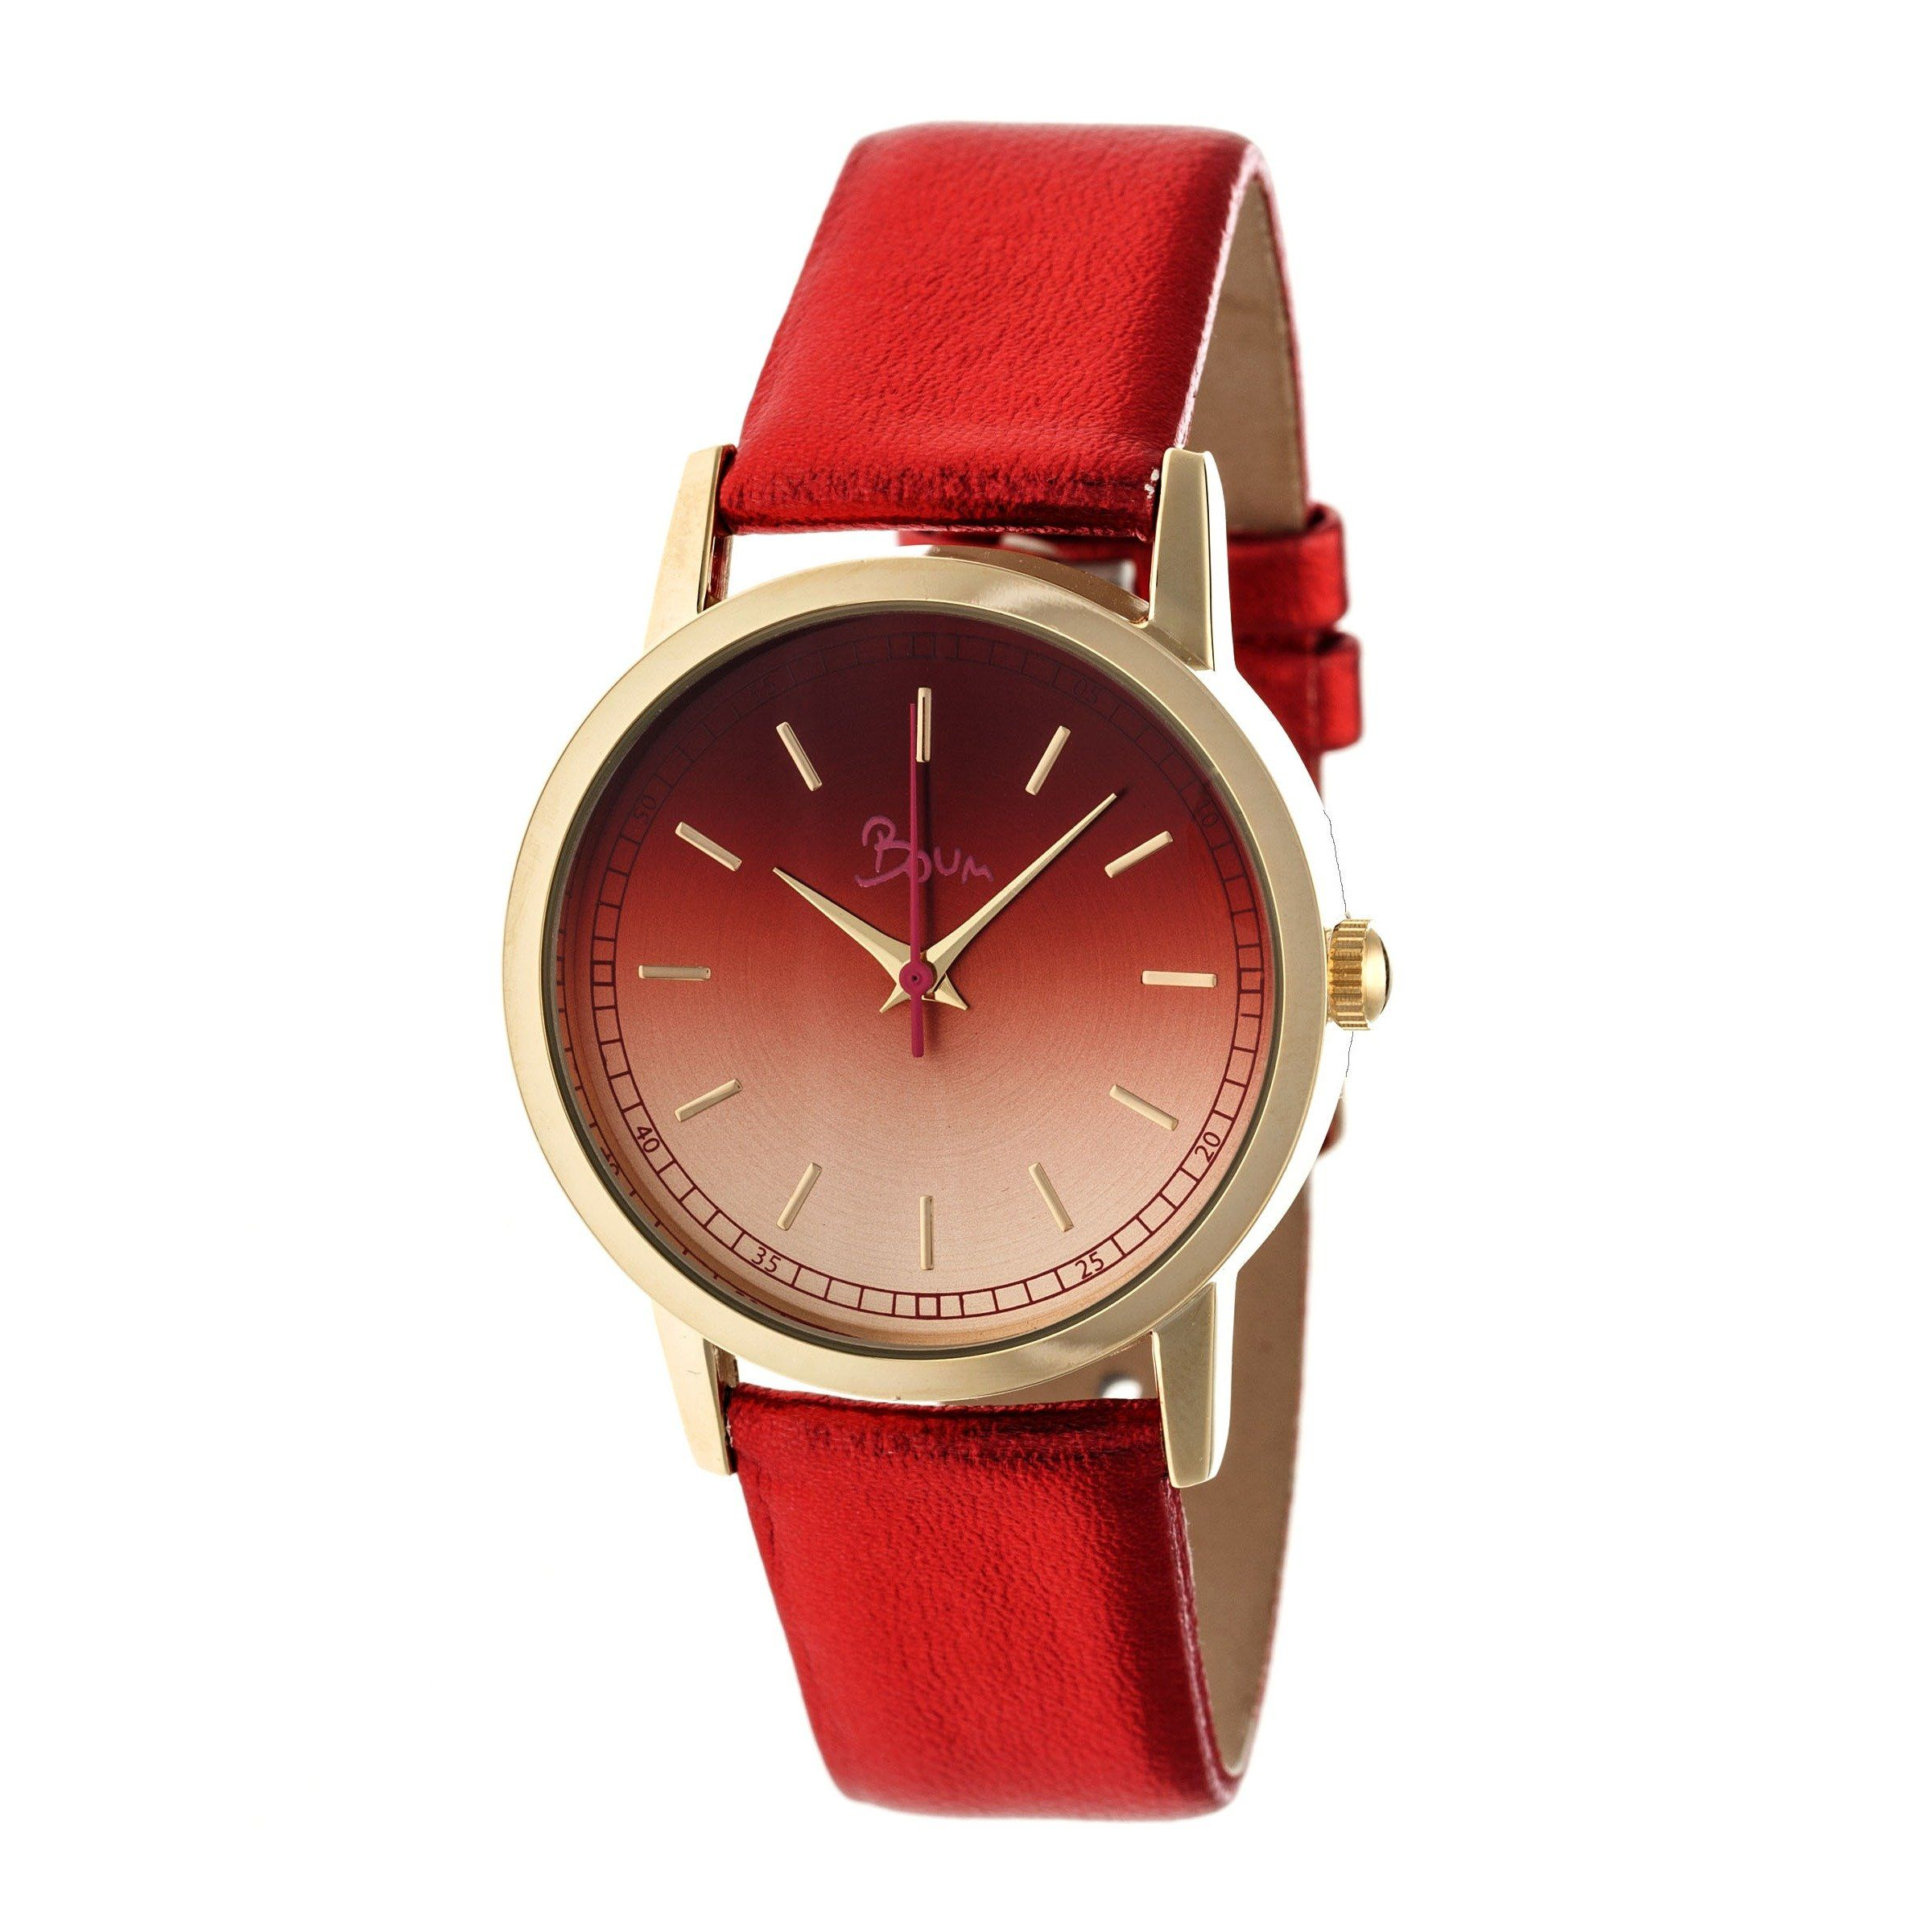 analog in fruiticious accessories guess watches leather view watch red lyst fullscreen